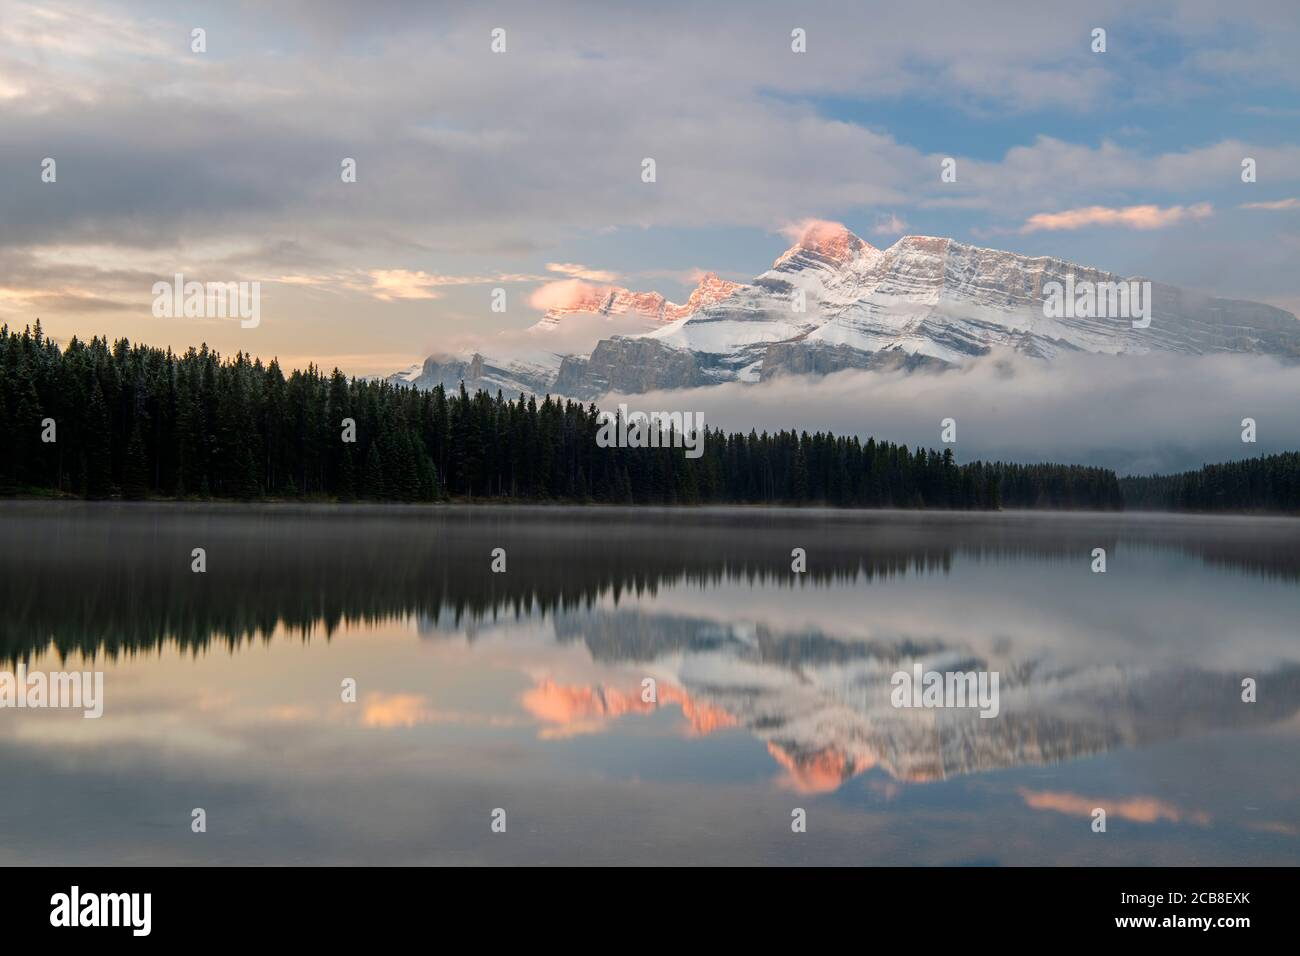 Mt. Rundle reflected in Two Jack Lake at dawn, Banff National Park, Alberta, Canada Stock Photo